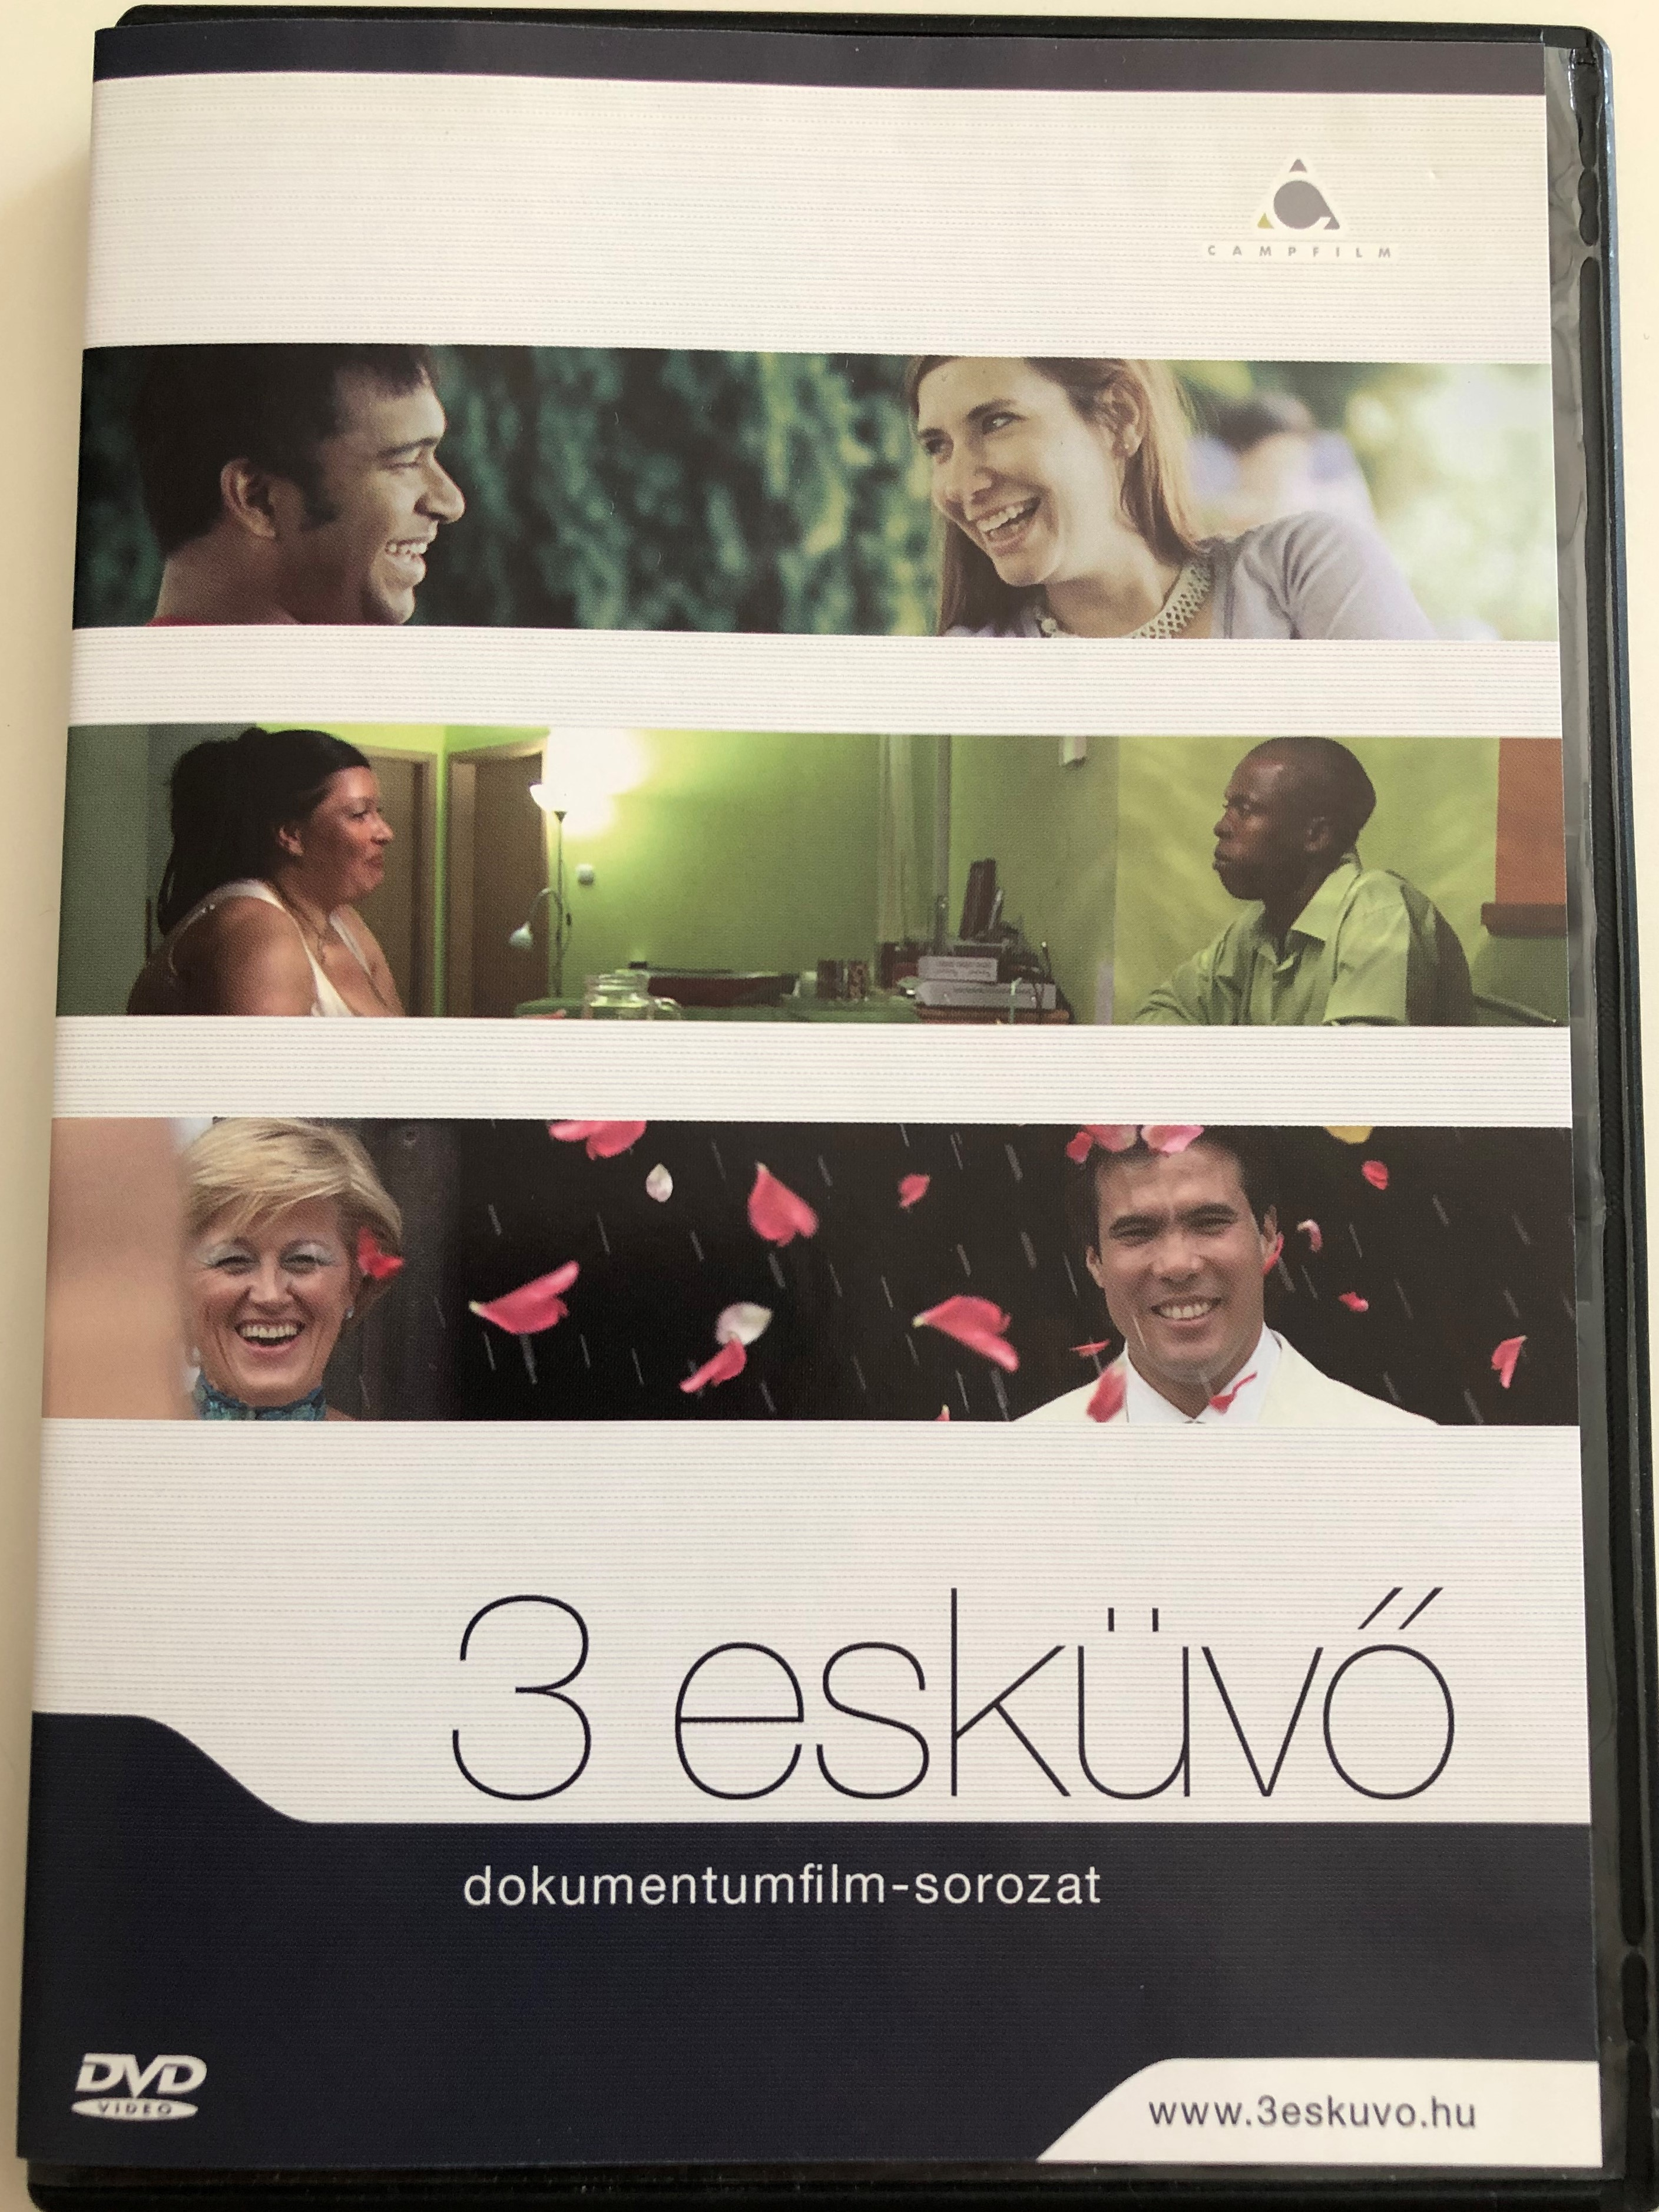 -3-esk-v-dvd-2009-3-weddings-hungarian-documentary-about-mixed-marriages-1-.jpg